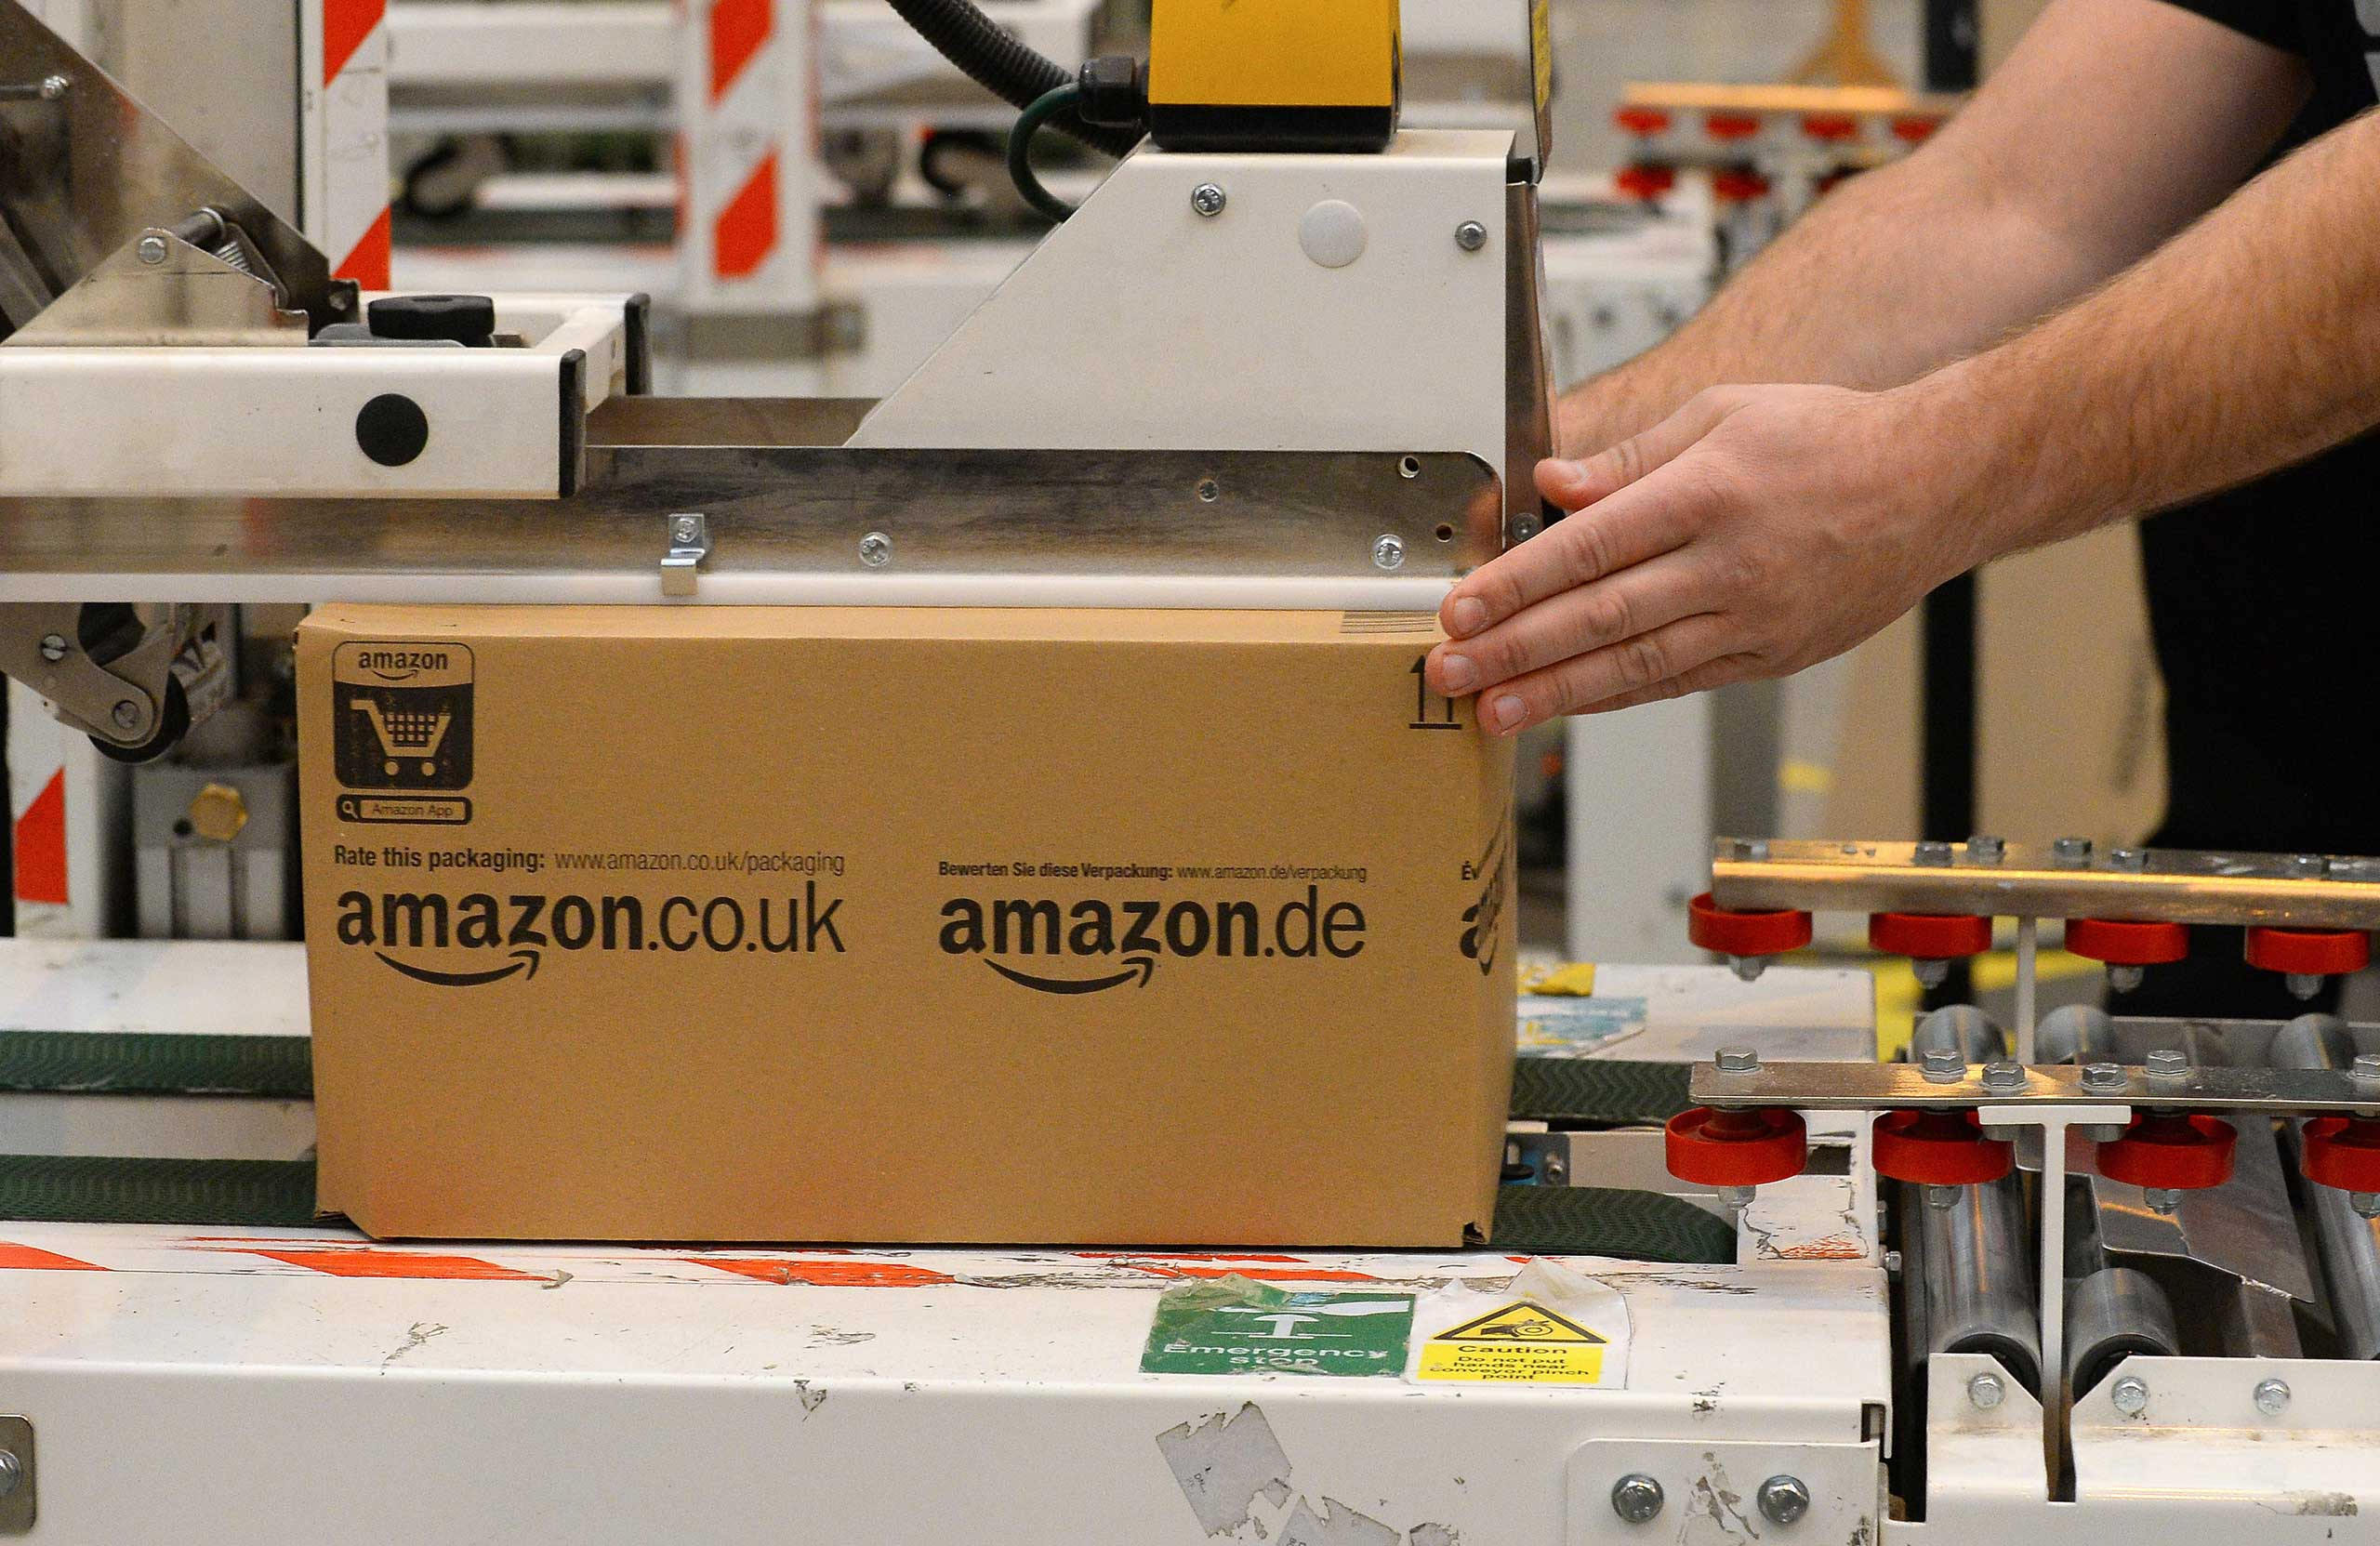 An employee packs orders in the Fulfilment Centre for online retail giant Amazon in Peterborough, central England, on November 28, 2013, ahead of Cyber Monday on December 2nd, expected to be one of the busiest online shopping days of the year.